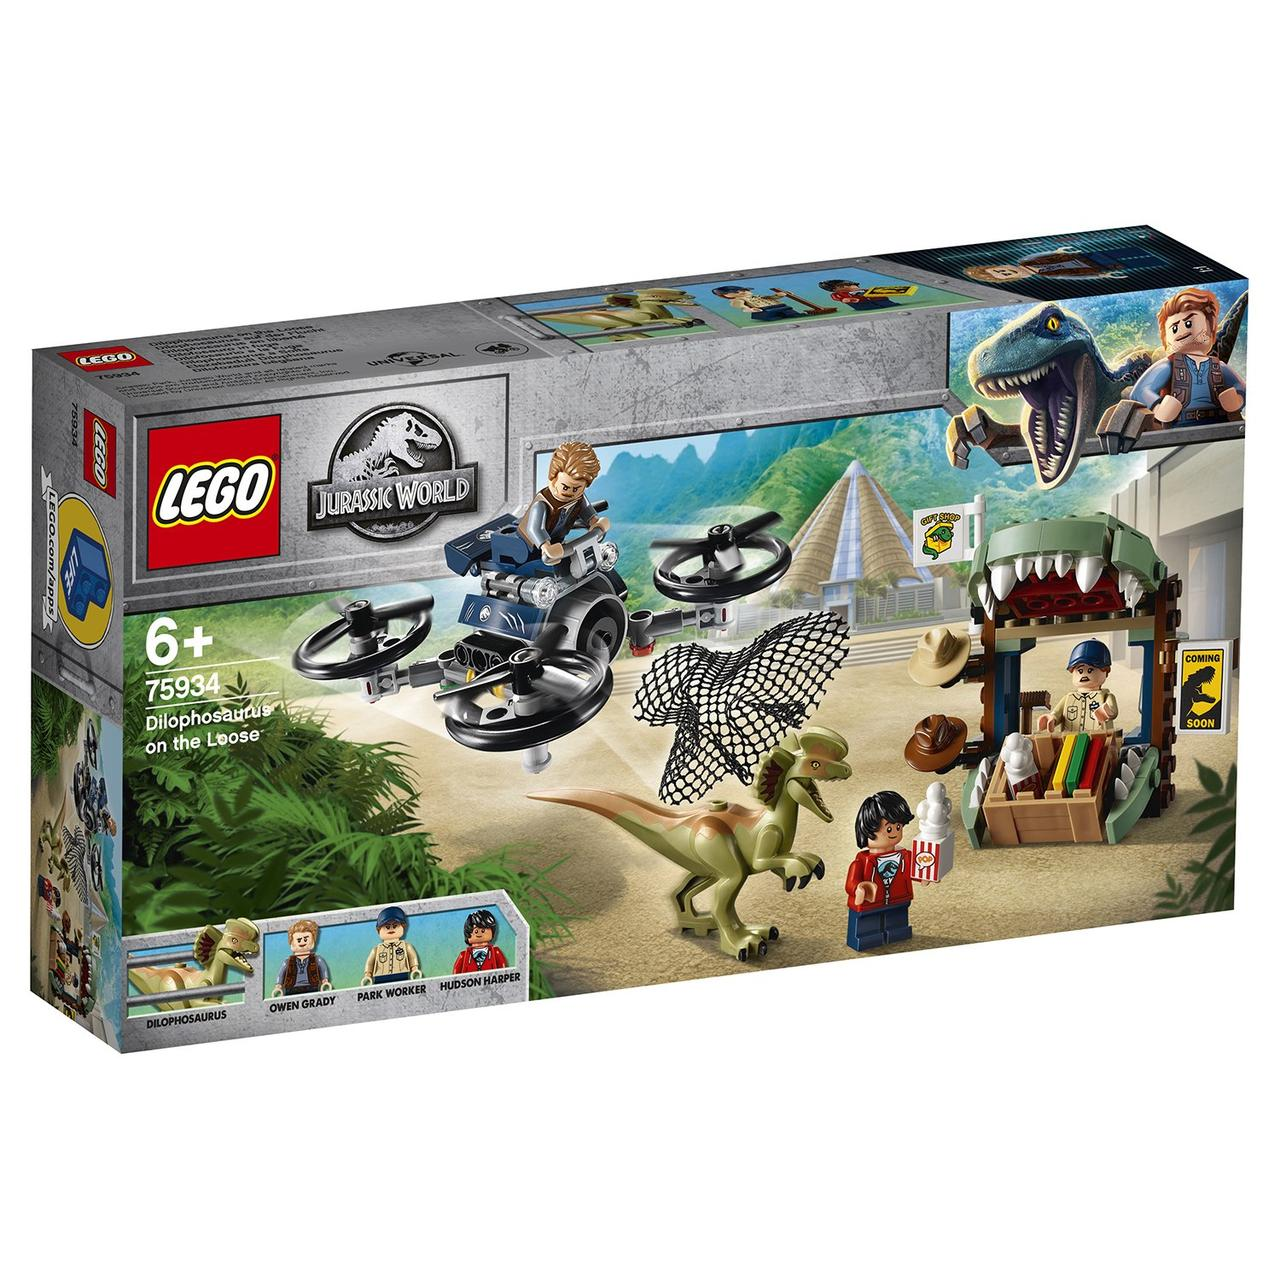 75934 Lego Jurassic World Побег дилофозавра, Лего Мир Юрского периода